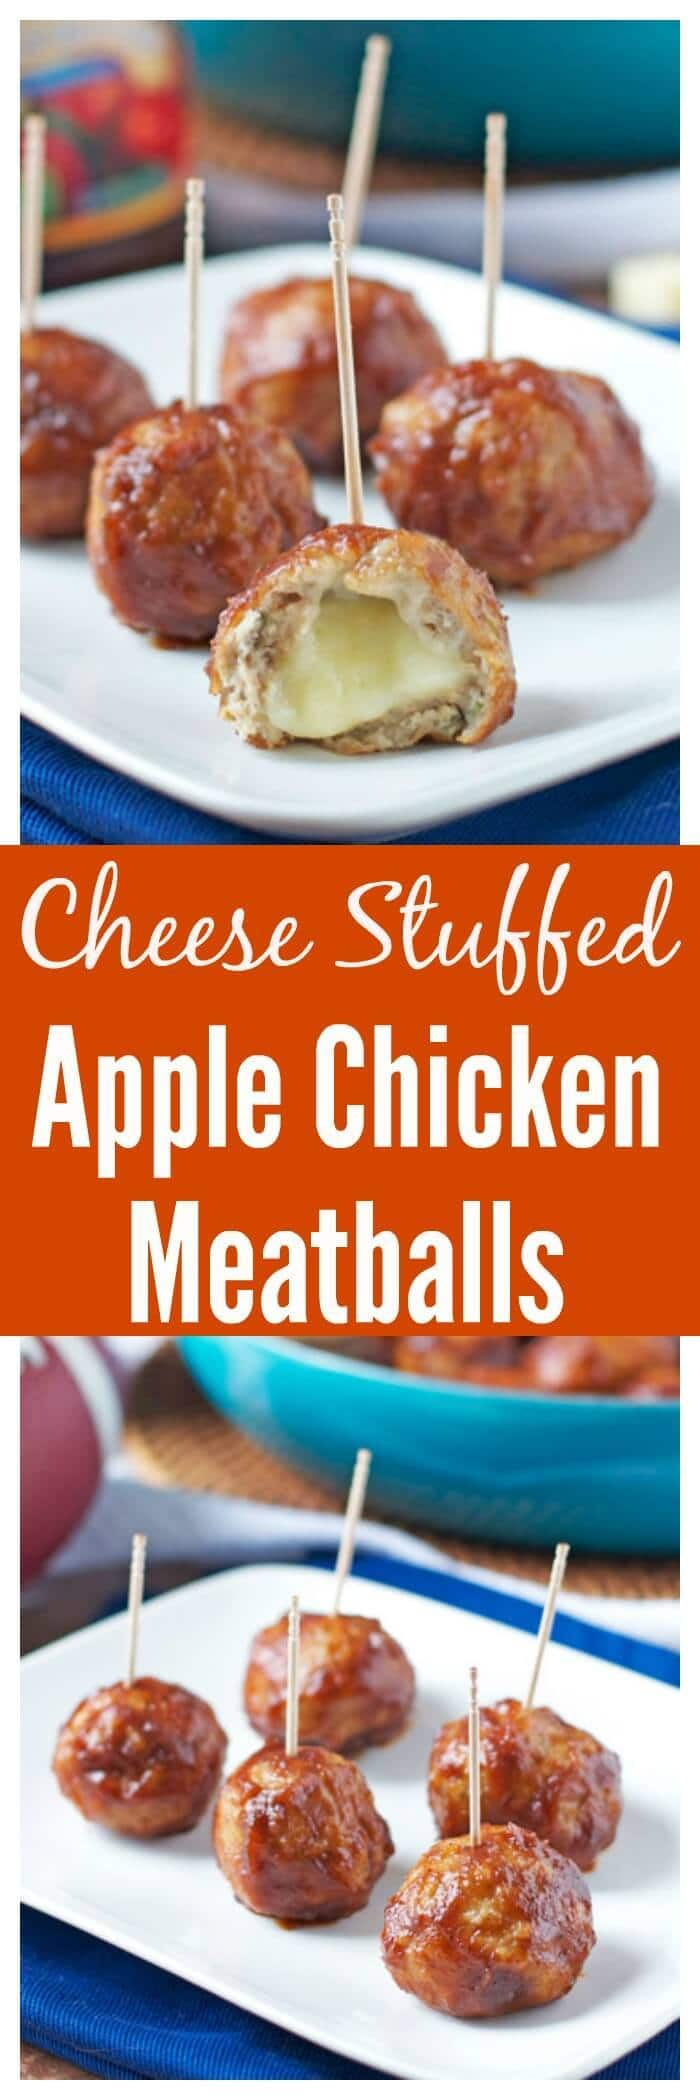 Cheese Stuffed Apple Chicken Meatballs